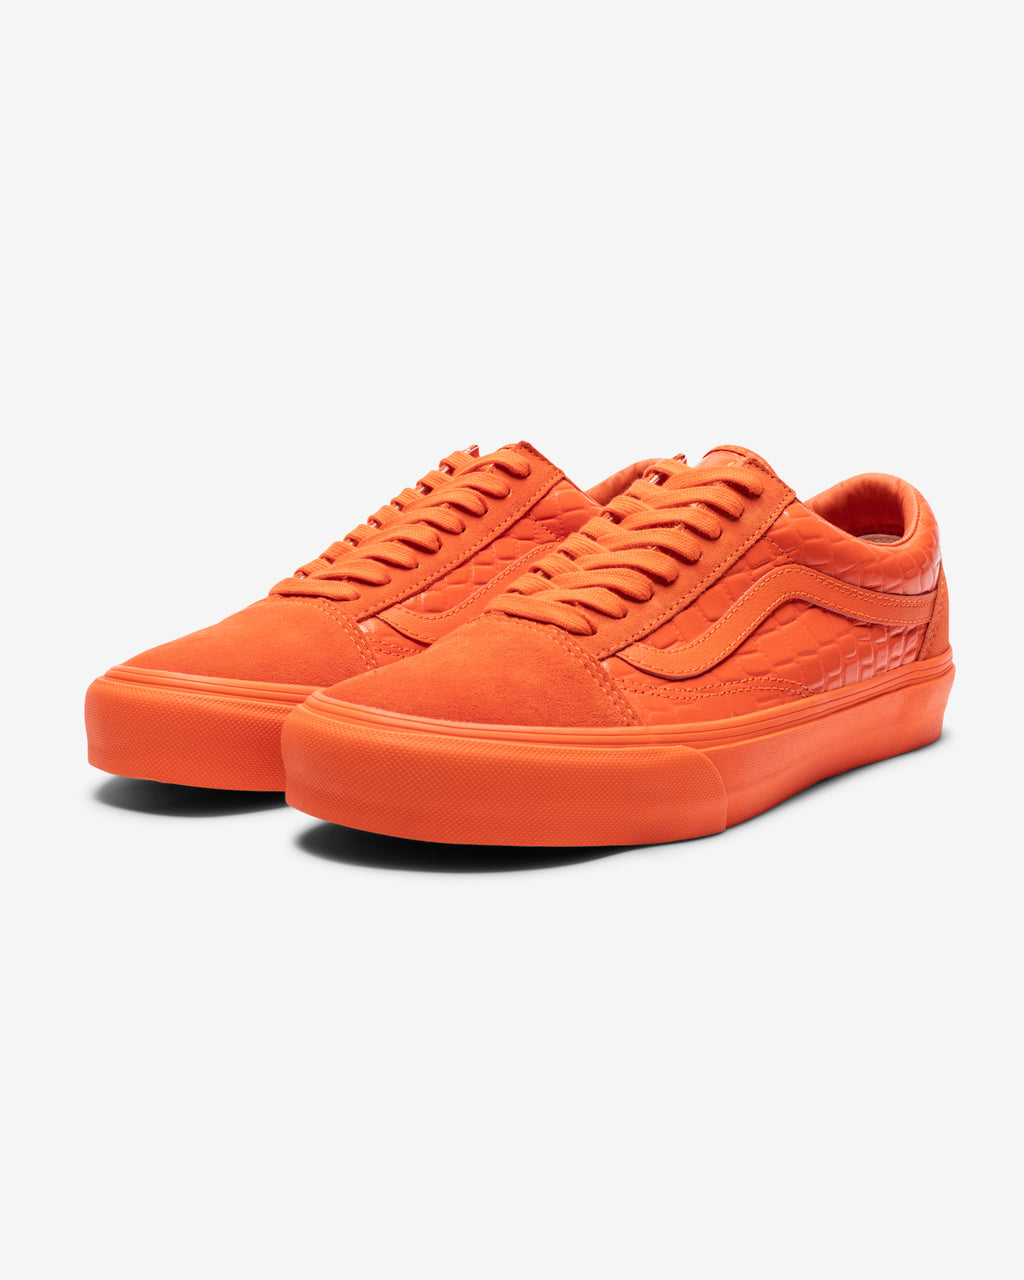 OLD SKOOL VLT LX (CROC SKIN) - RED